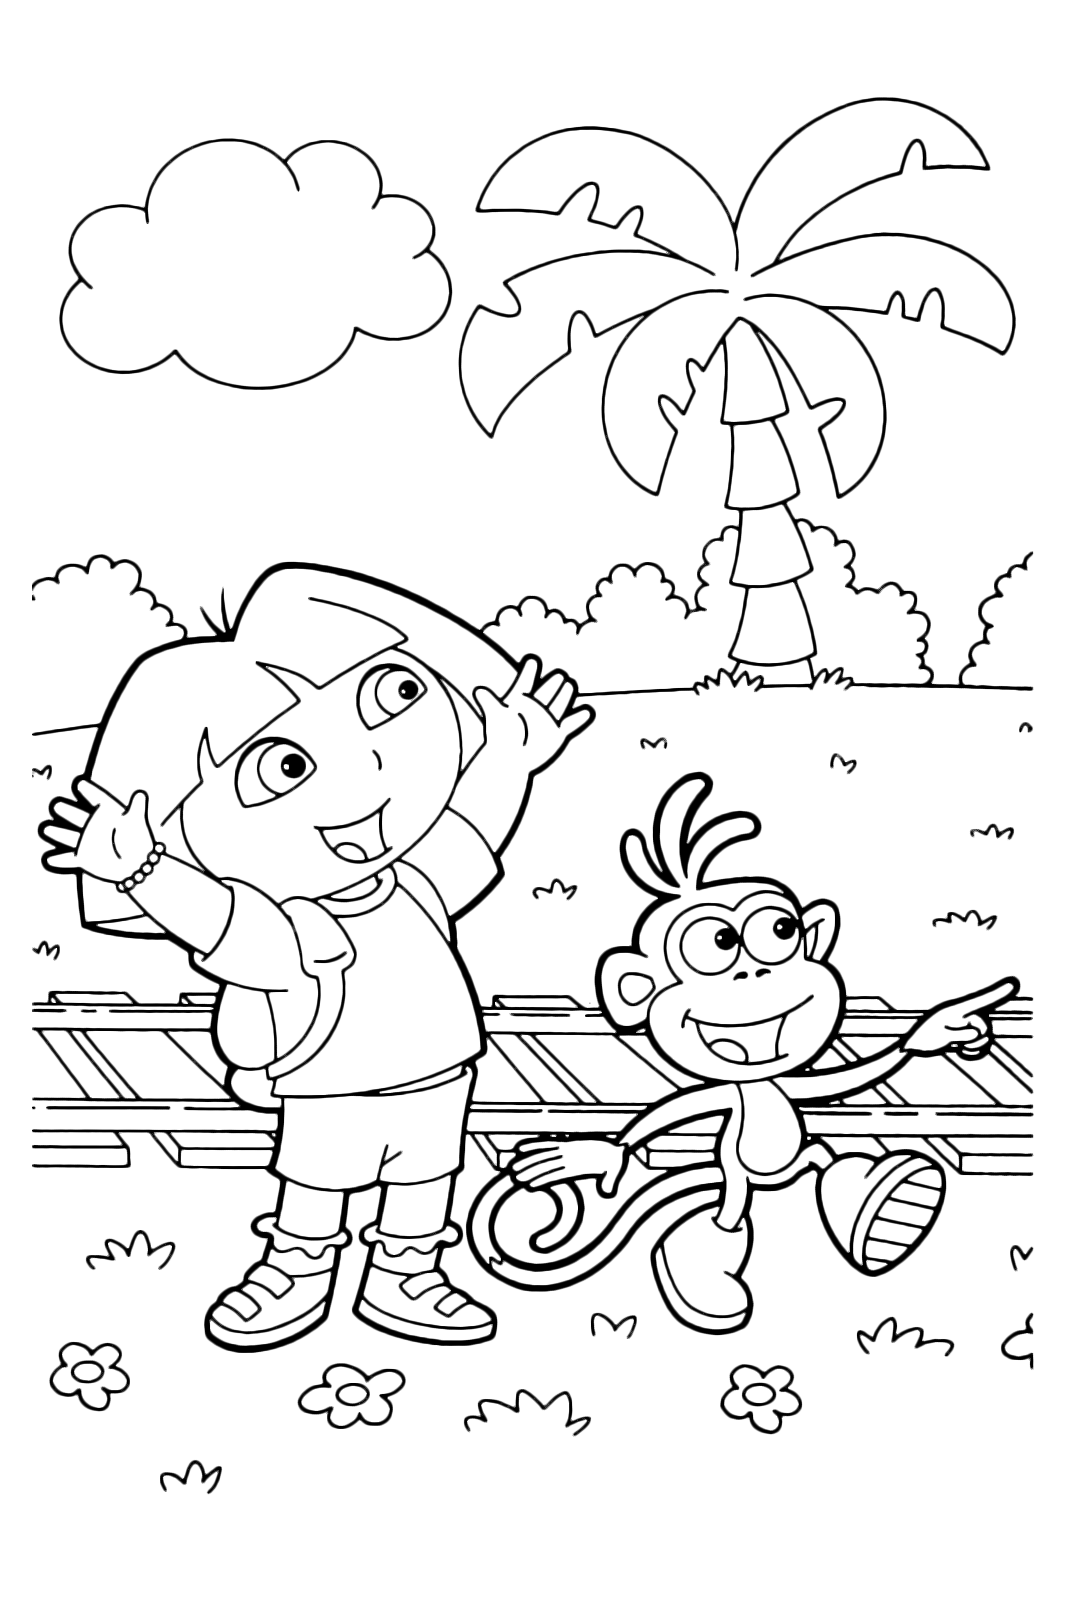 Dora the Explorer - Dora and Boots happy because they found the train tracks